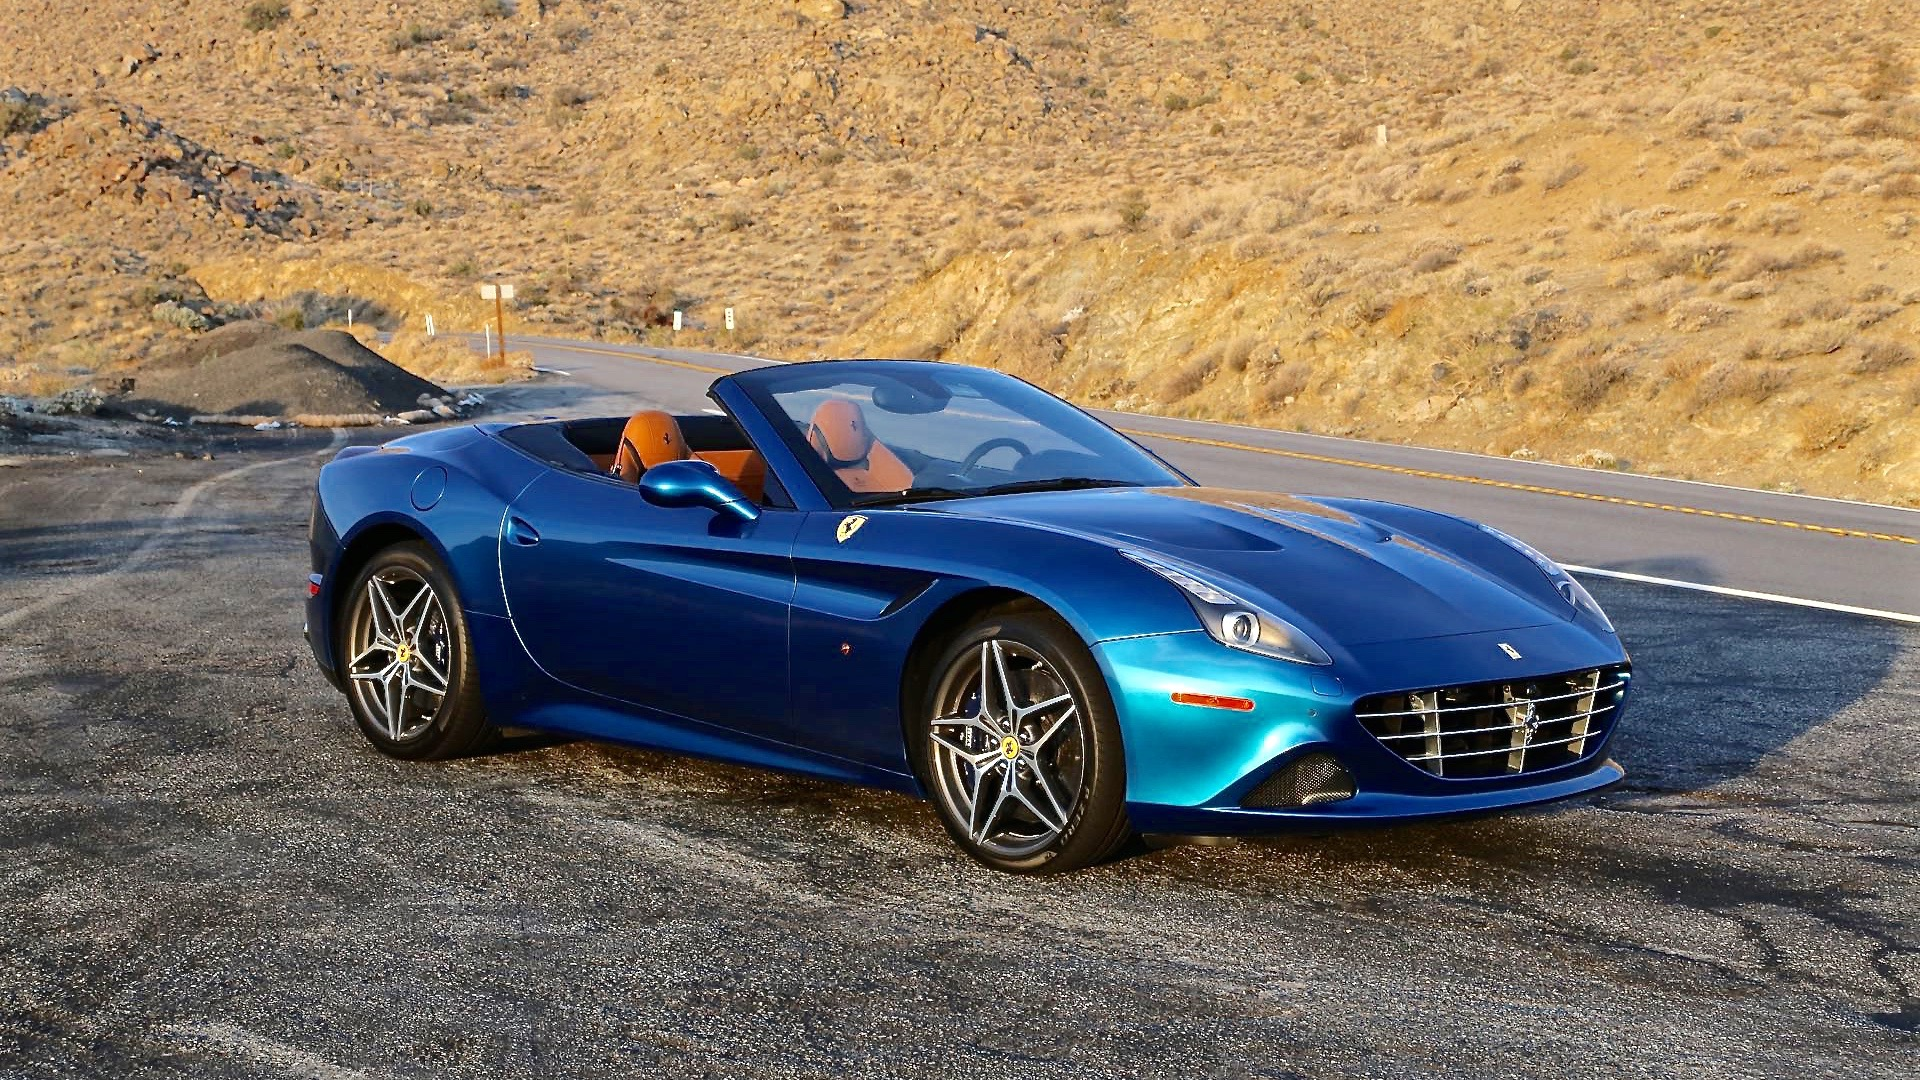 Ferrari California T >> 2015 Ferrari California T joy ride (Page 2)